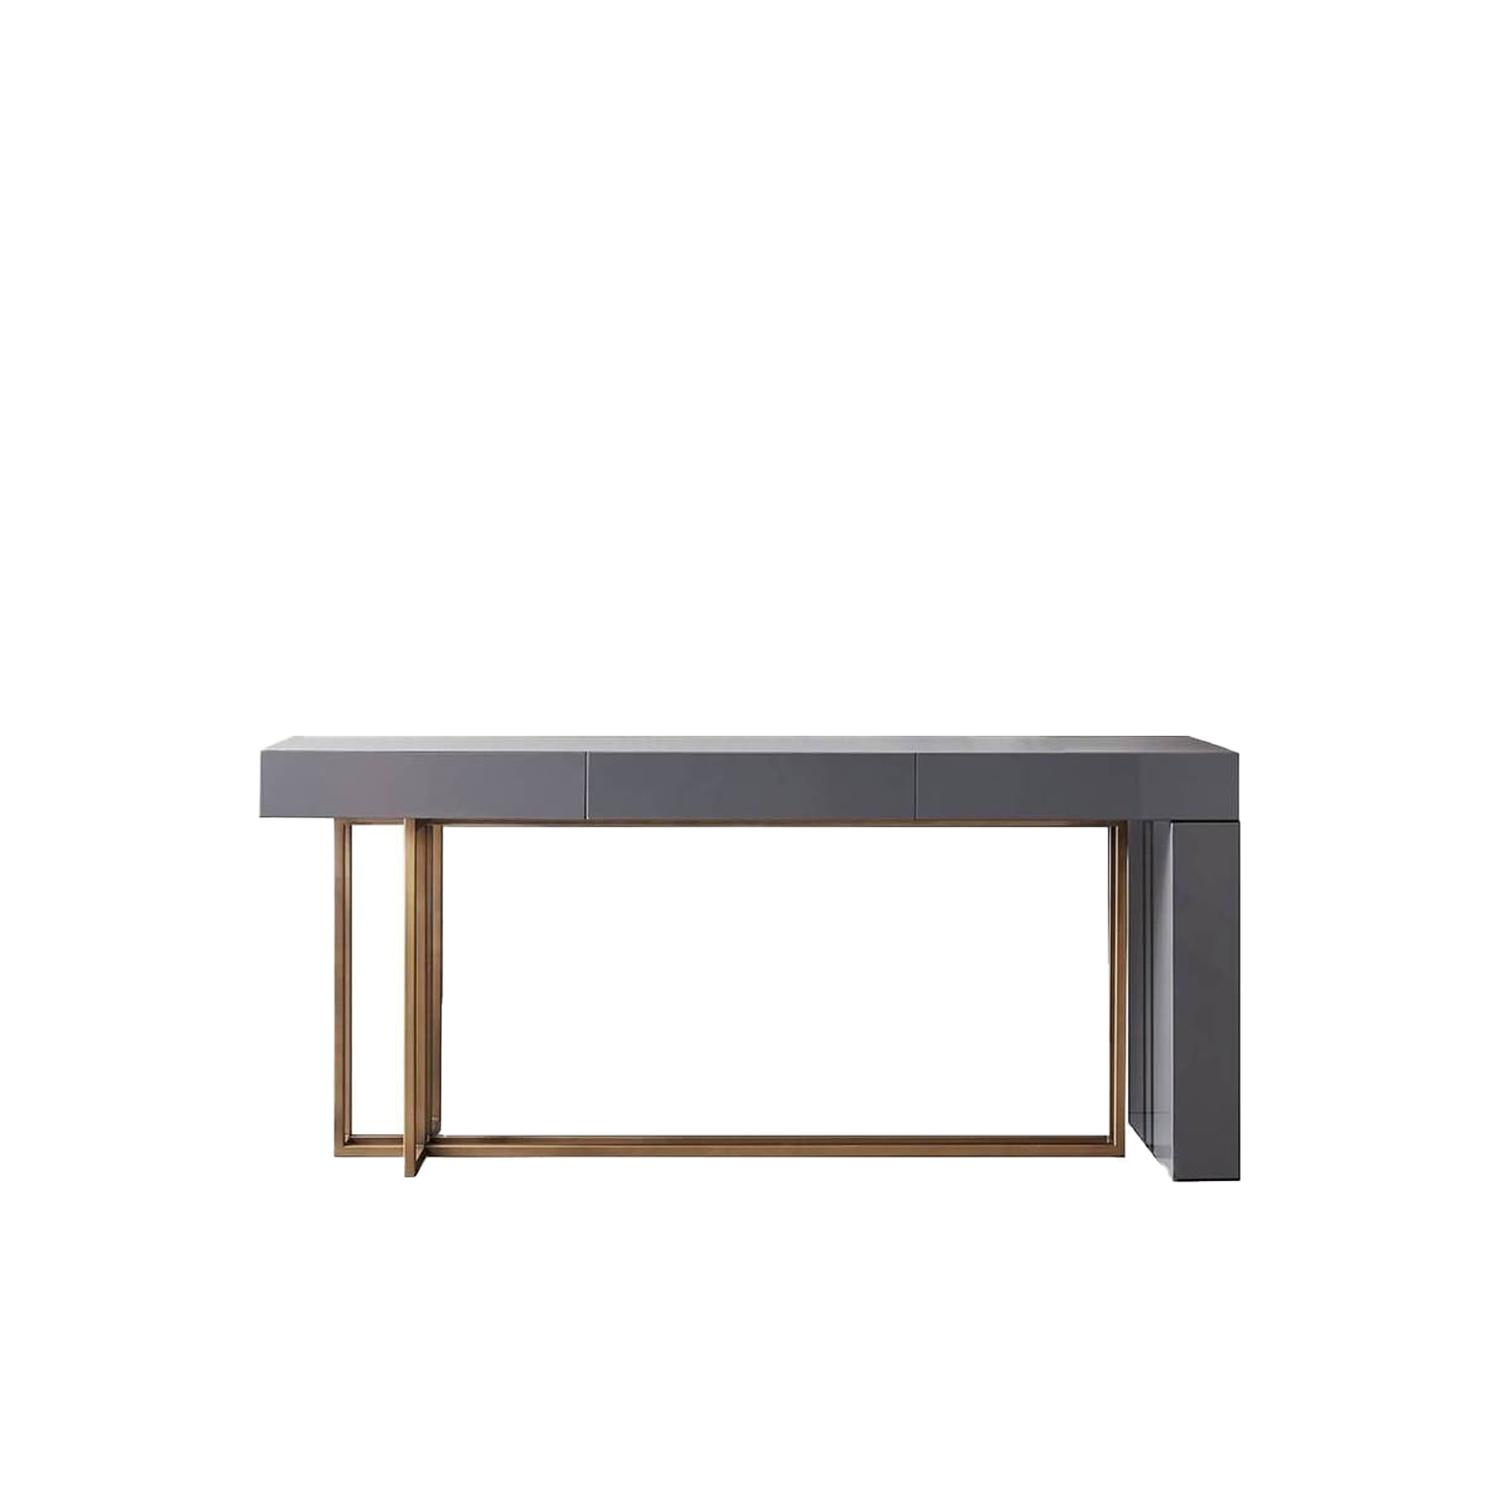 Quincy Editions Shine Console Table - Console in wood available in various finishes with three drawers.